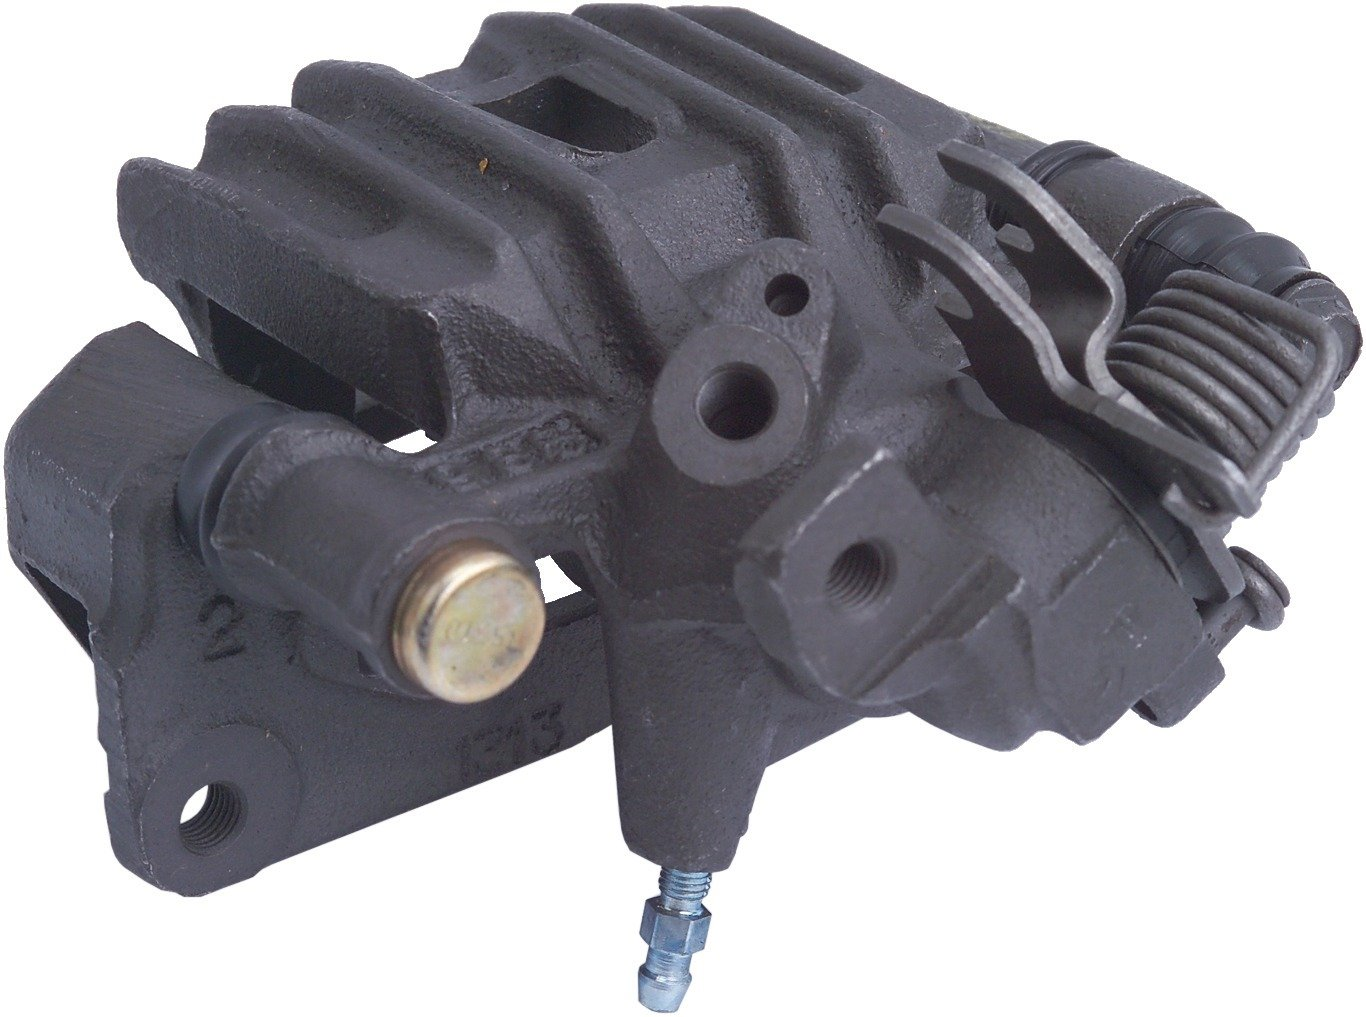 Brake Caliper Cardone 19-B1378A Remanufactured Import Friction Ready Unloaded